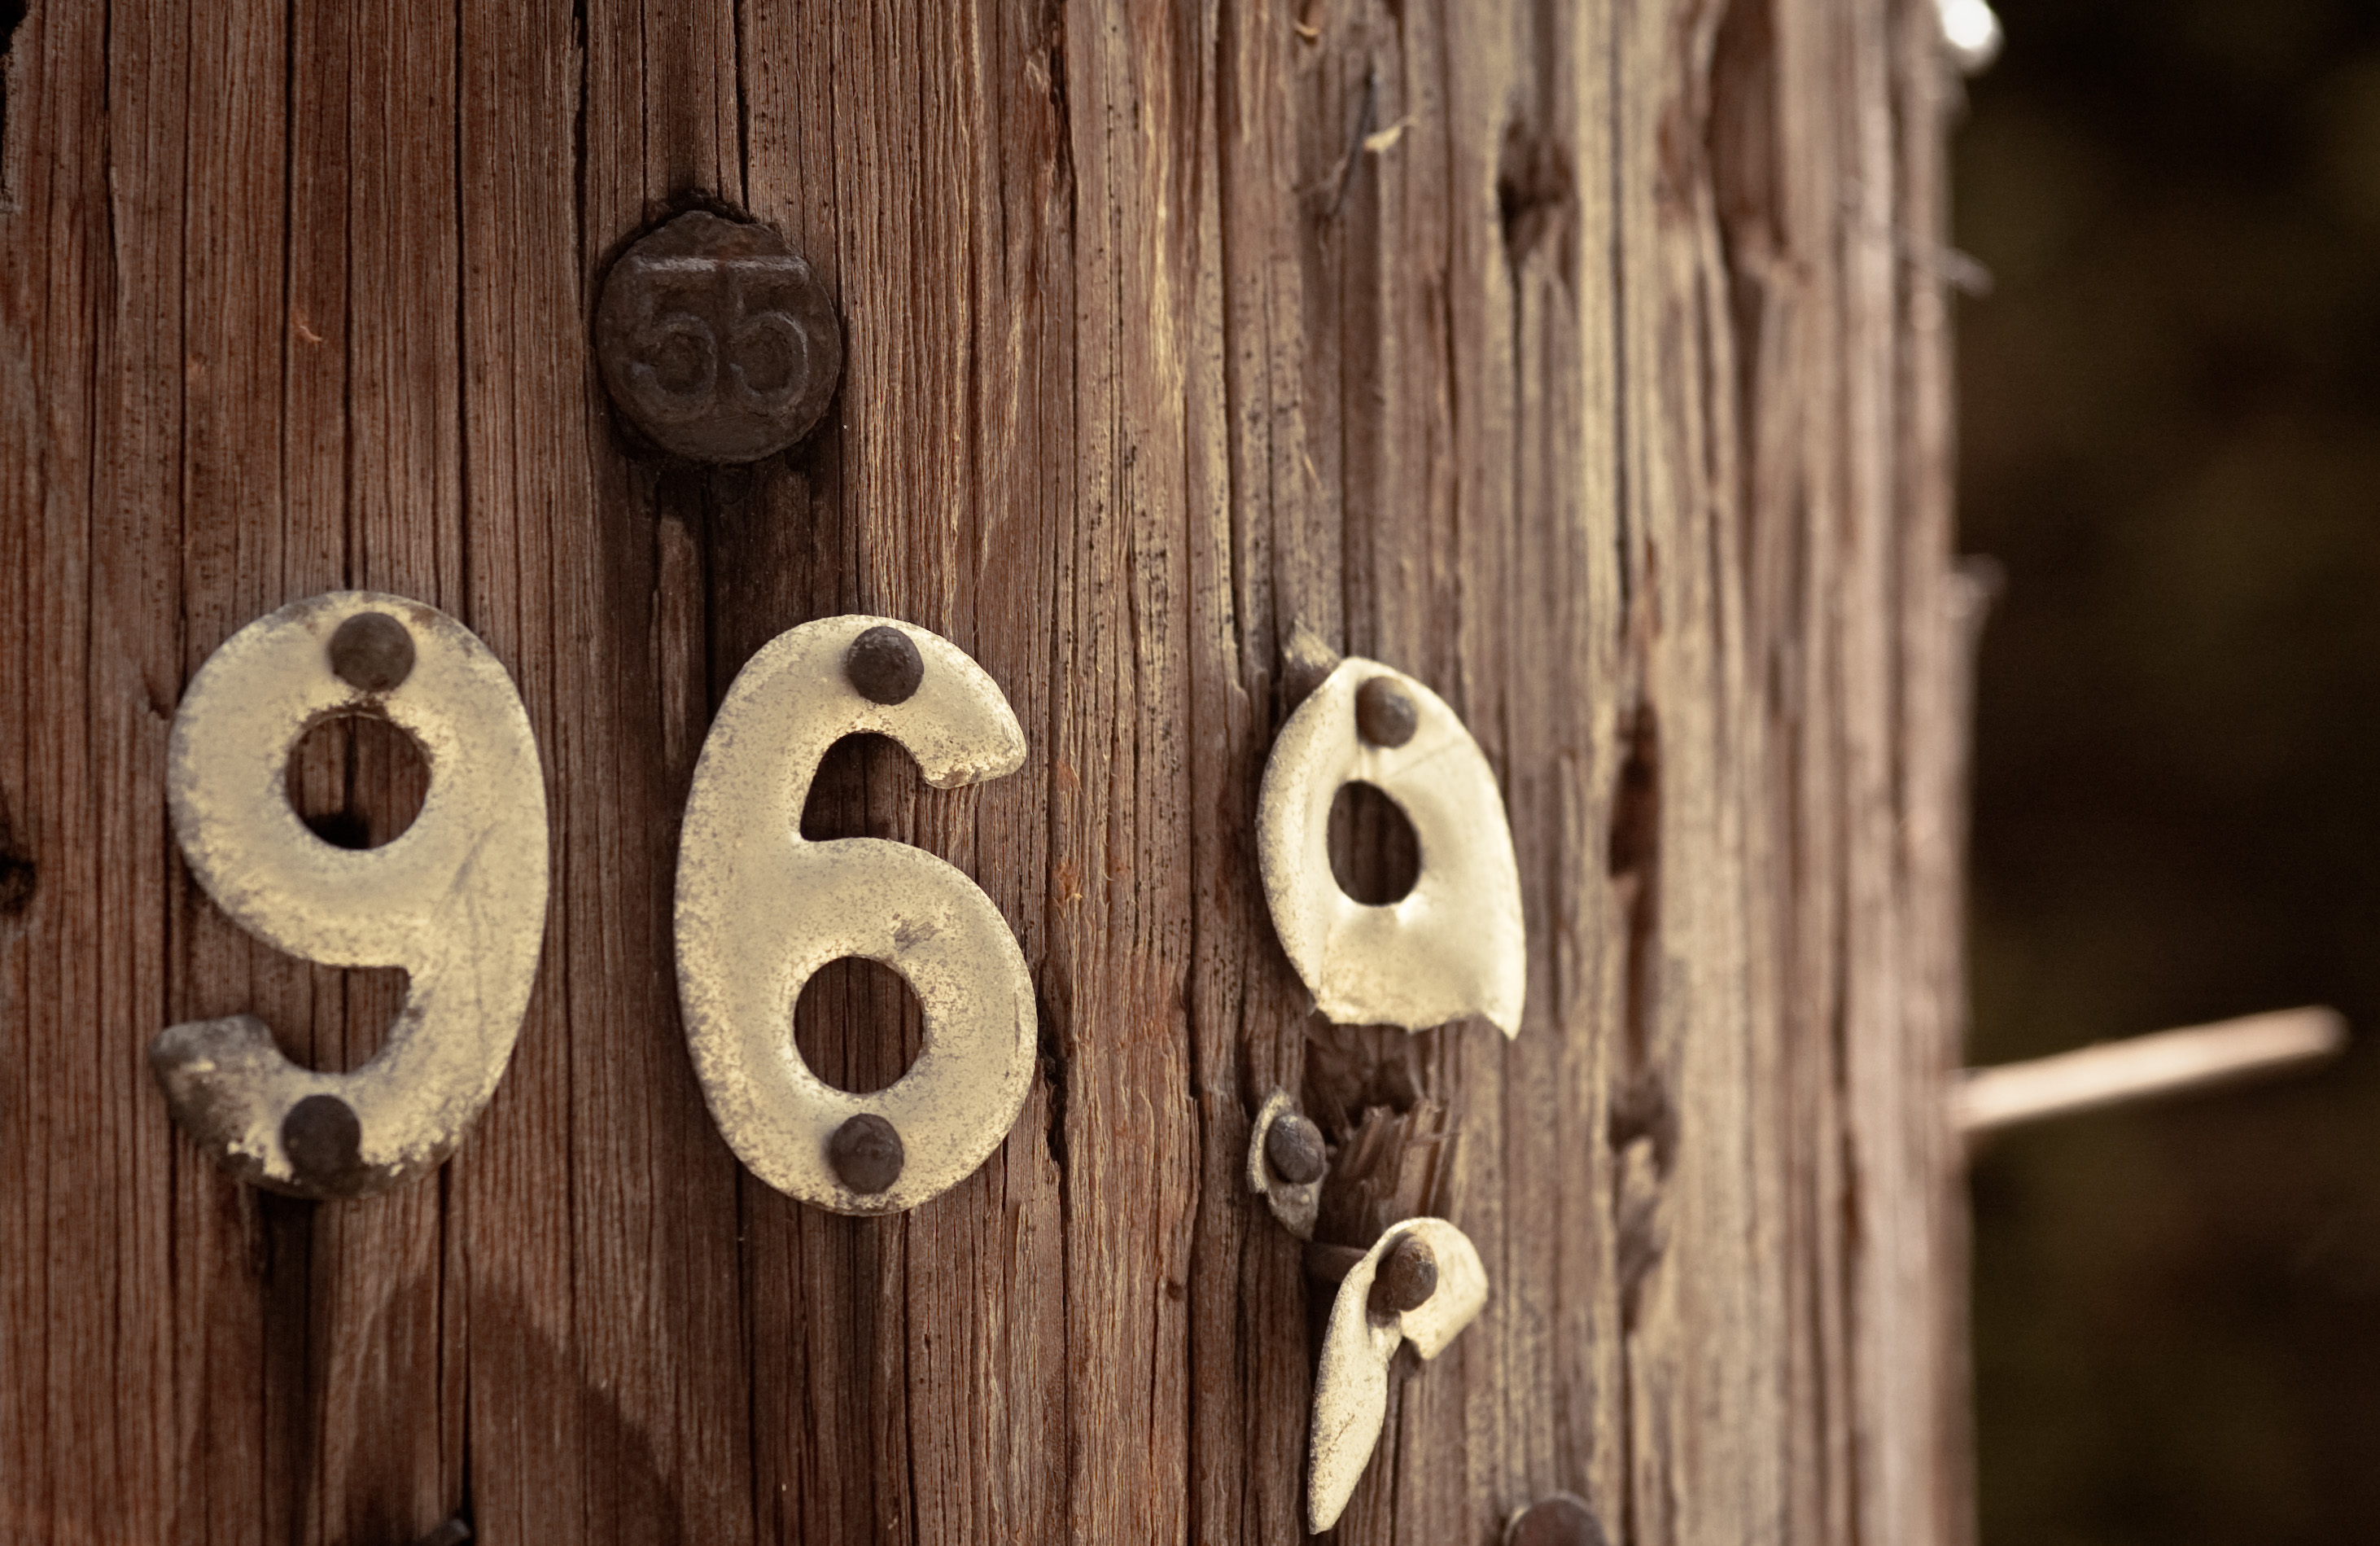 biblical meaning of number 327